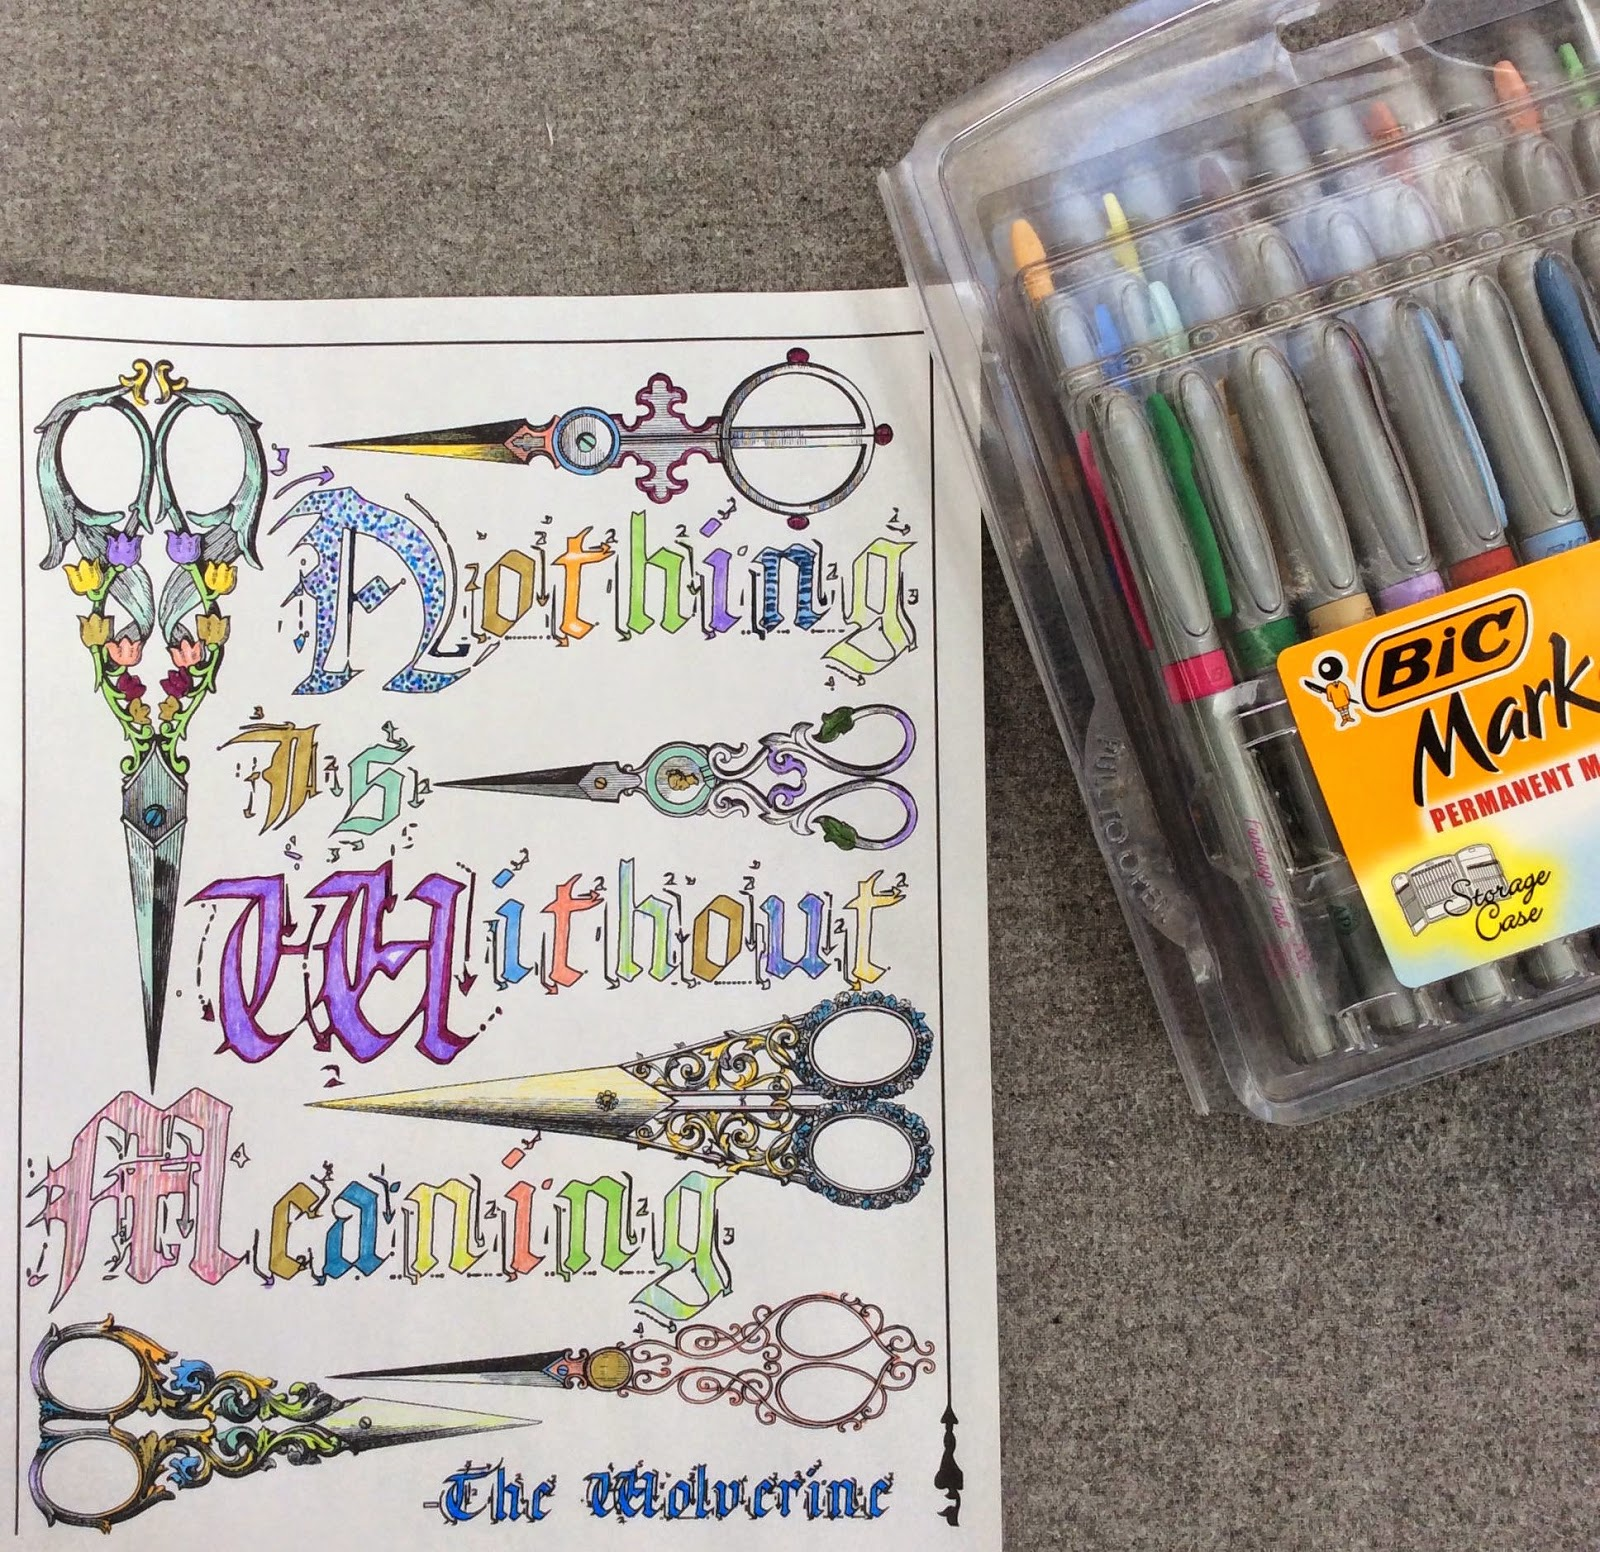 adult coloring page free download quote, stefanie girard, bic markers